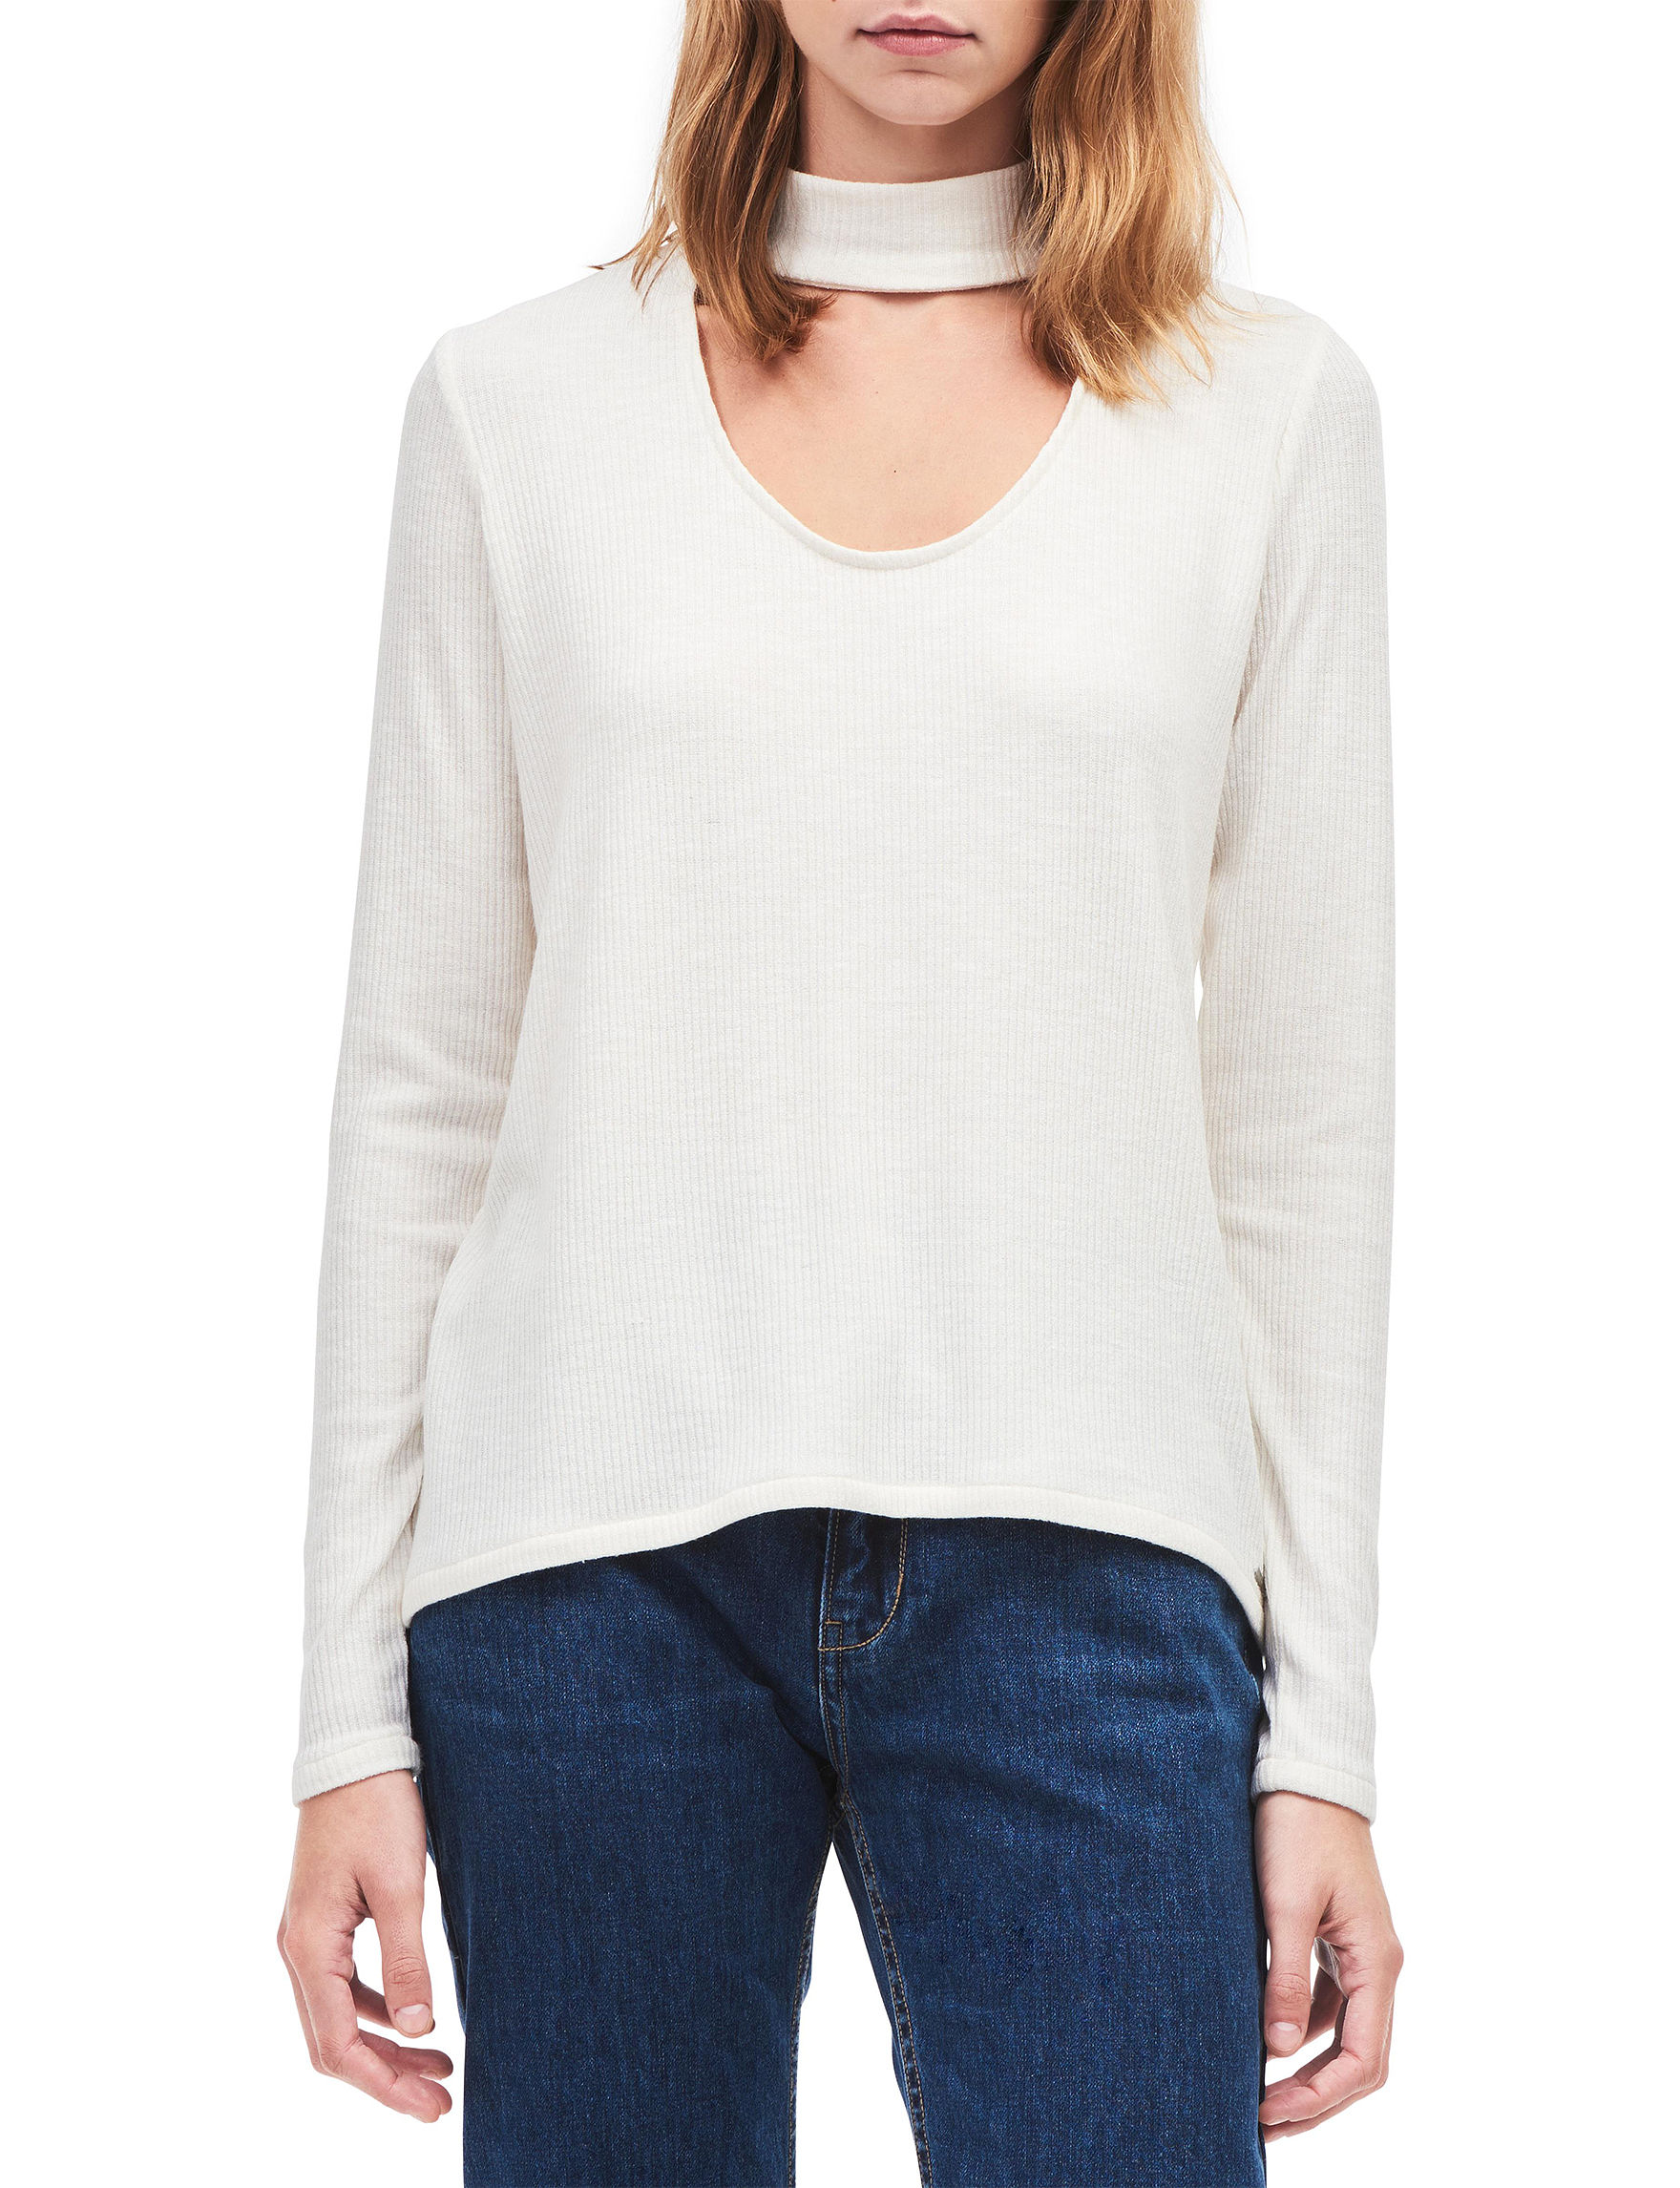 Calvin Klein Jeans White Pull-overs